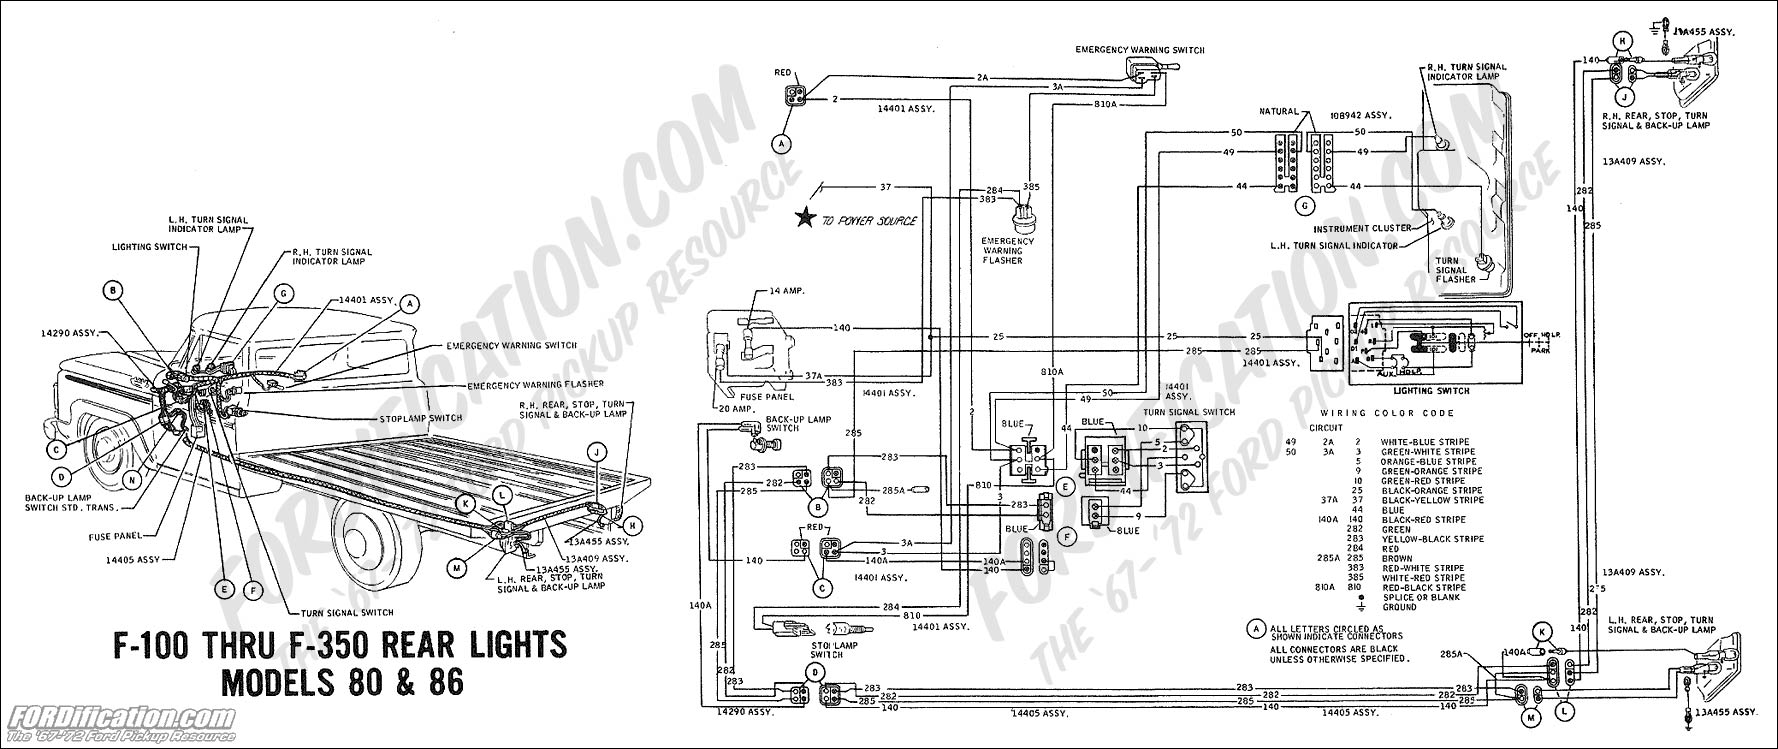 hight resolution of ford f 350 tail light wiring diagram schema wiring diagram 1995 ford e350 tail light diagram